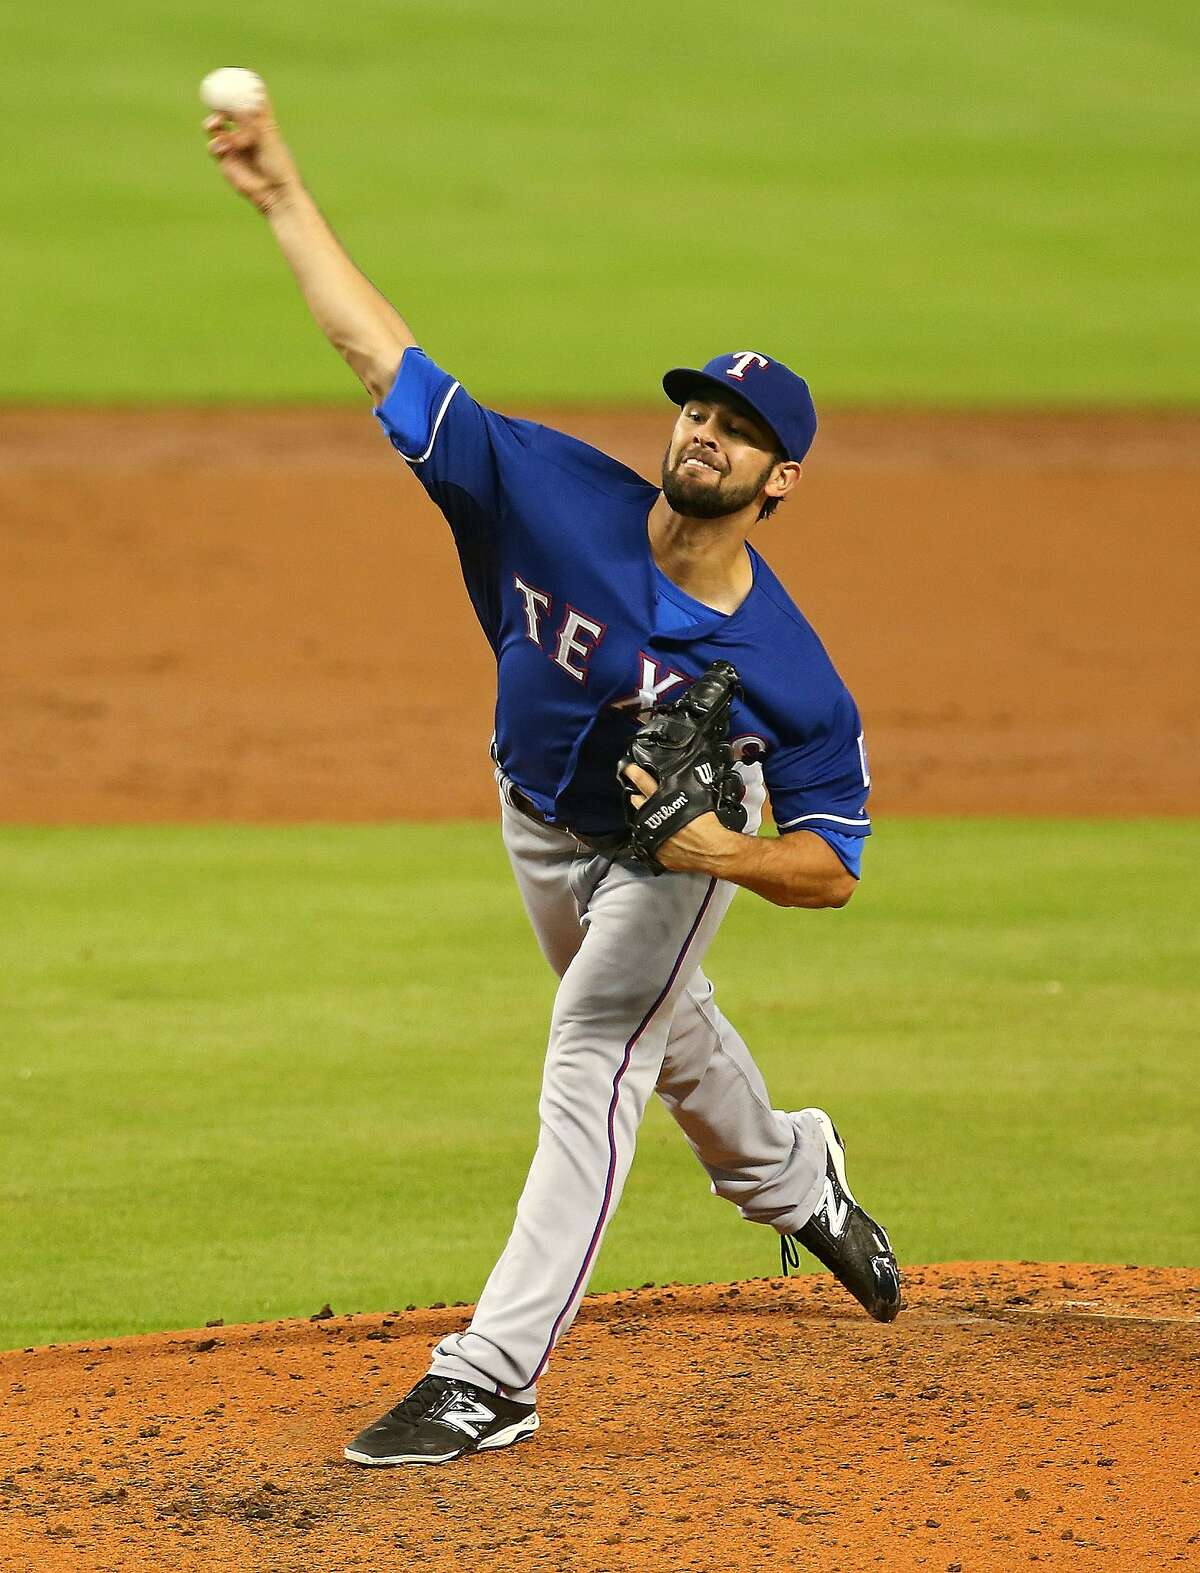 MIAMI, FL - AUGUST 20: Nick Martinez #22 of the Texas Rangers pitches during a game against the Miami Marlins at Marlins Park on August 20, 2014 in Miami, Florida. (Photo by Mike Ehrmann/Getty Images)